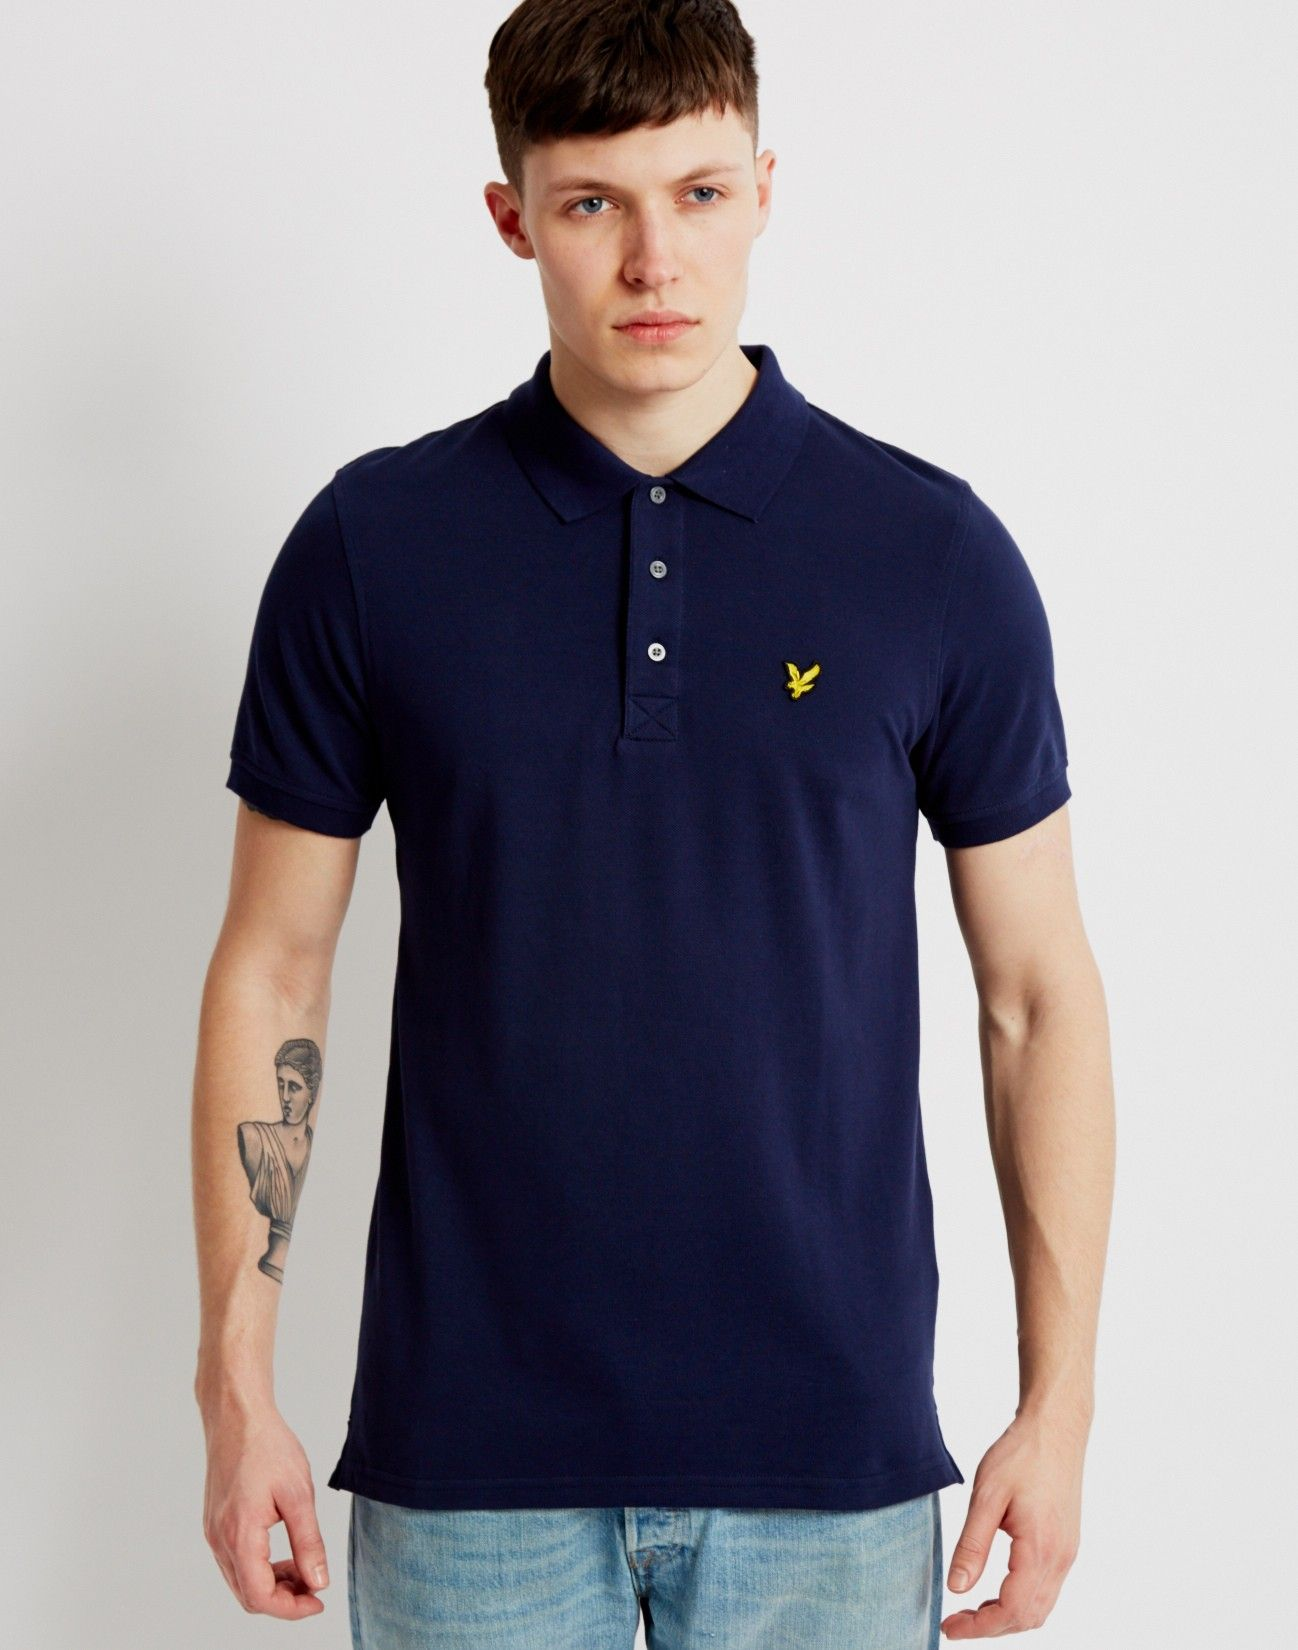 Lyle & Scott Polo Shirt Navy | Shop menswear at The Idle Man